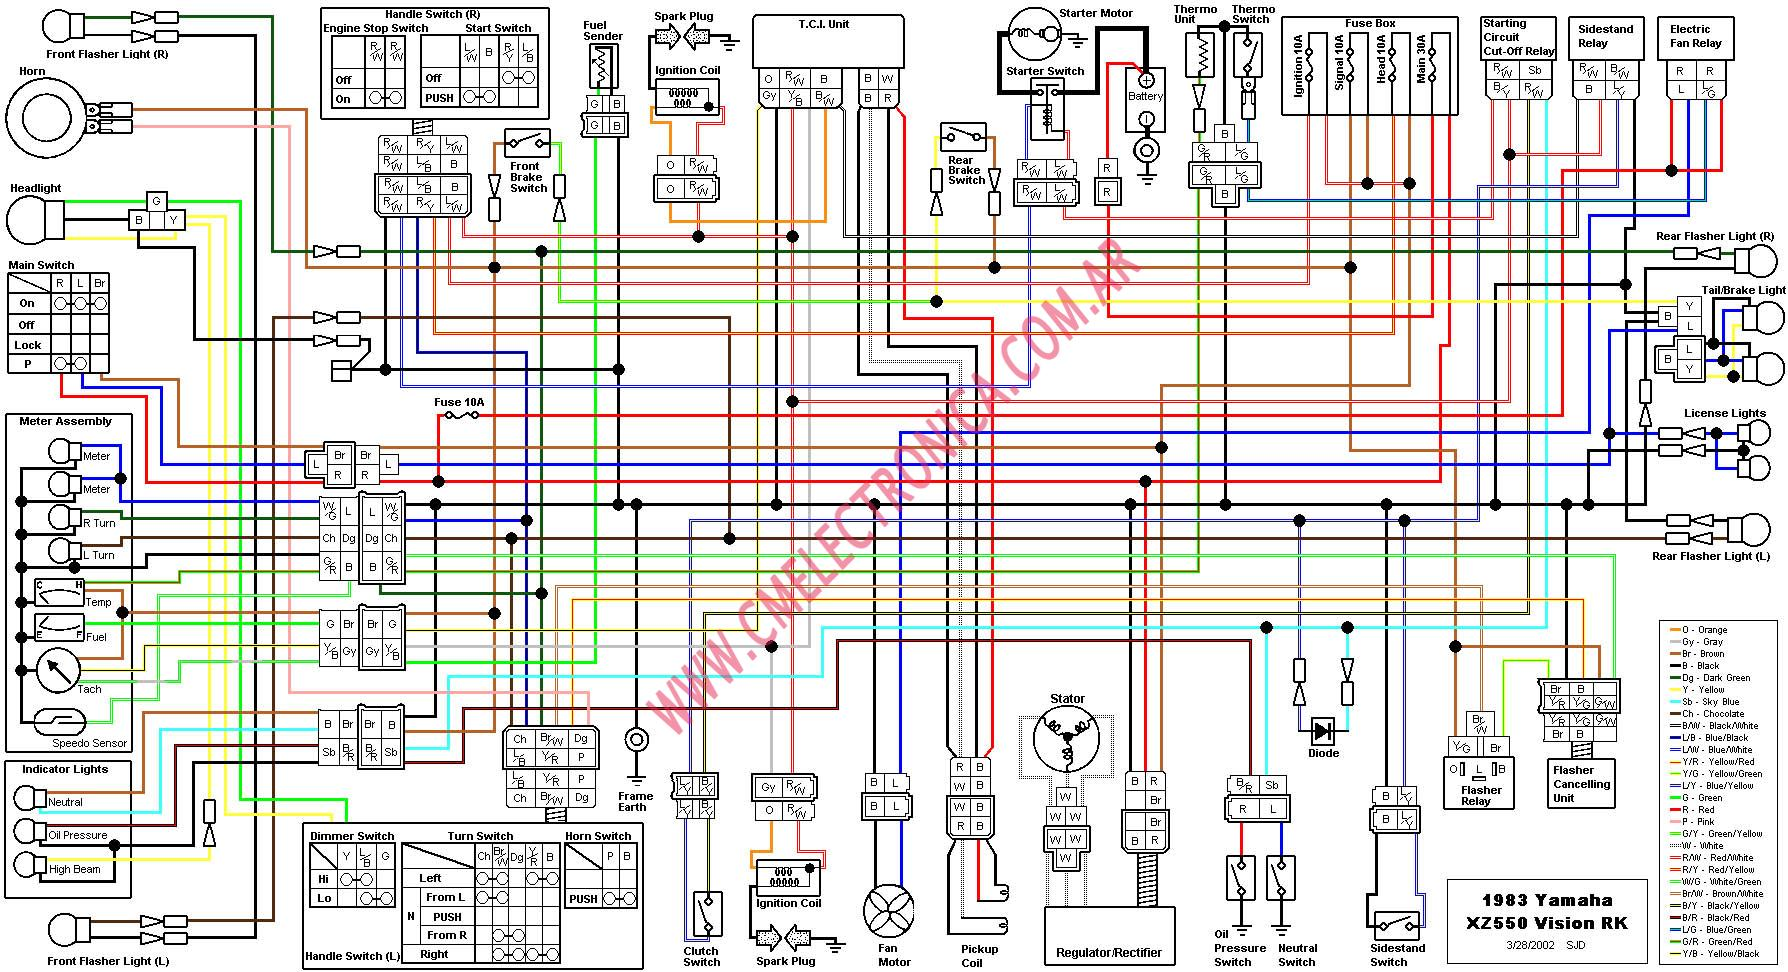 whirlpool refrigerator wiring diagram whirlpool images sensor on ge washing machine motor wiring diagram picture